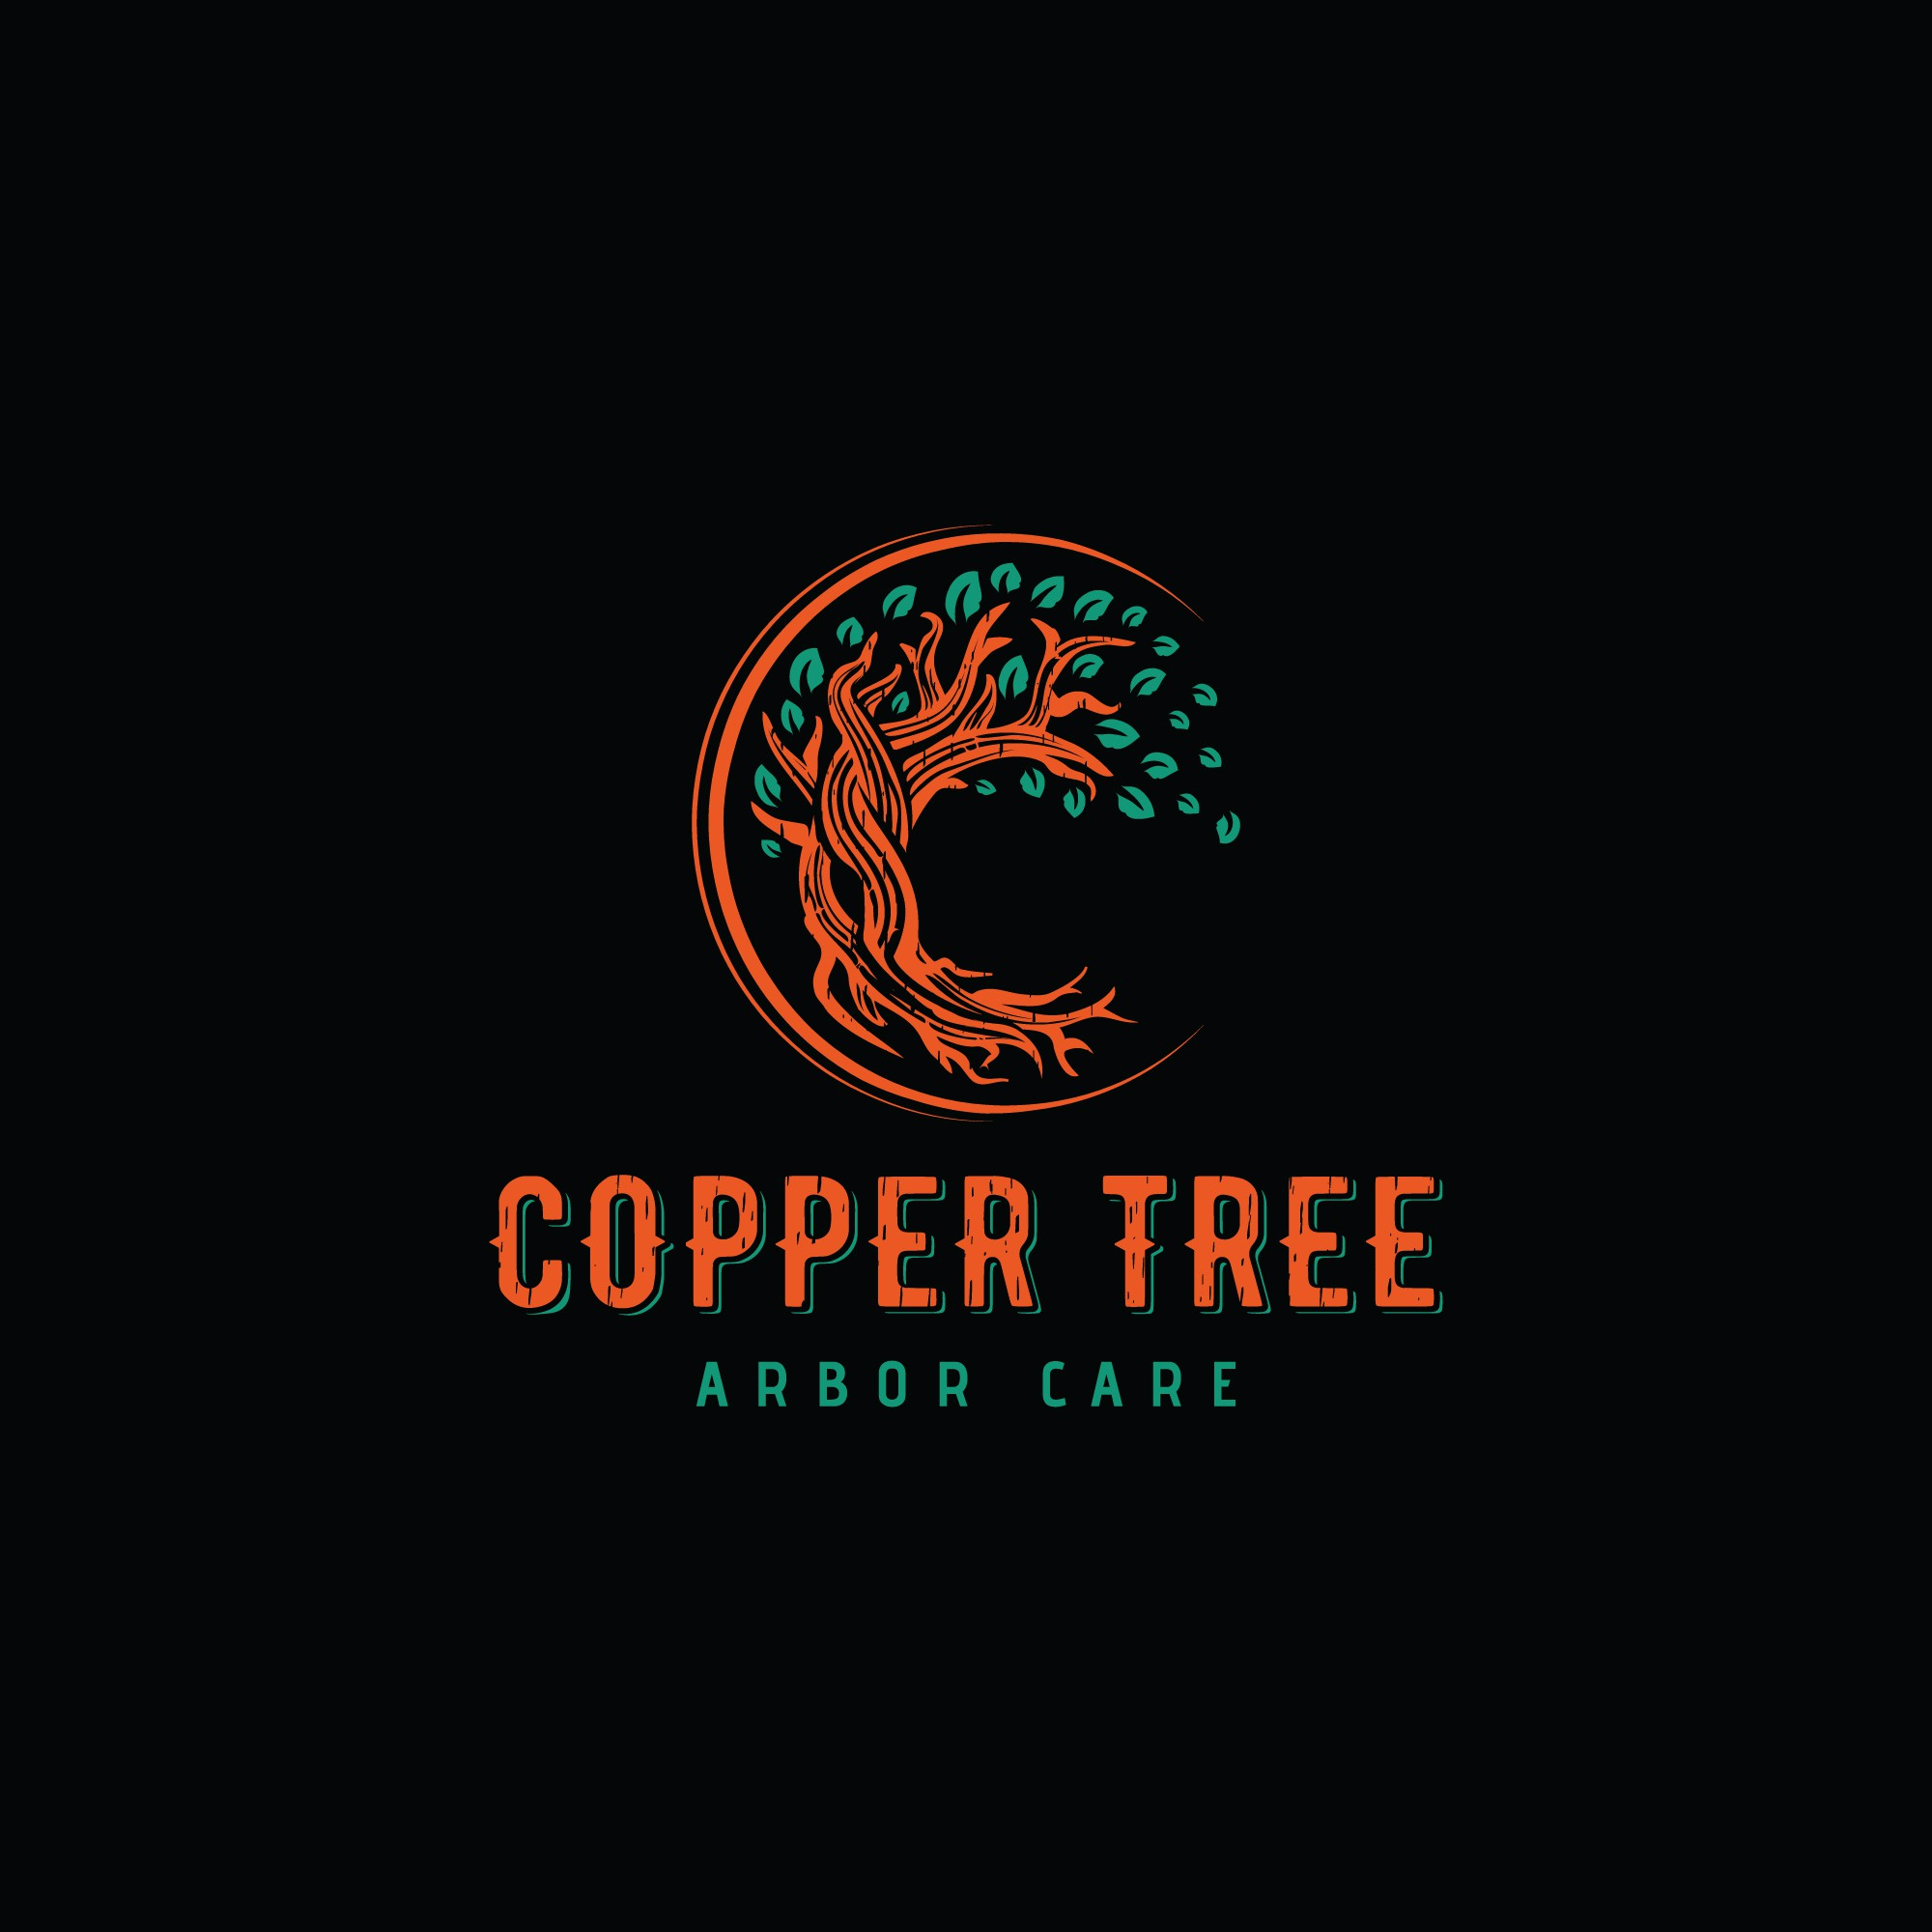 Like to find a cool retro design for a small business tree service that will go with black and orang